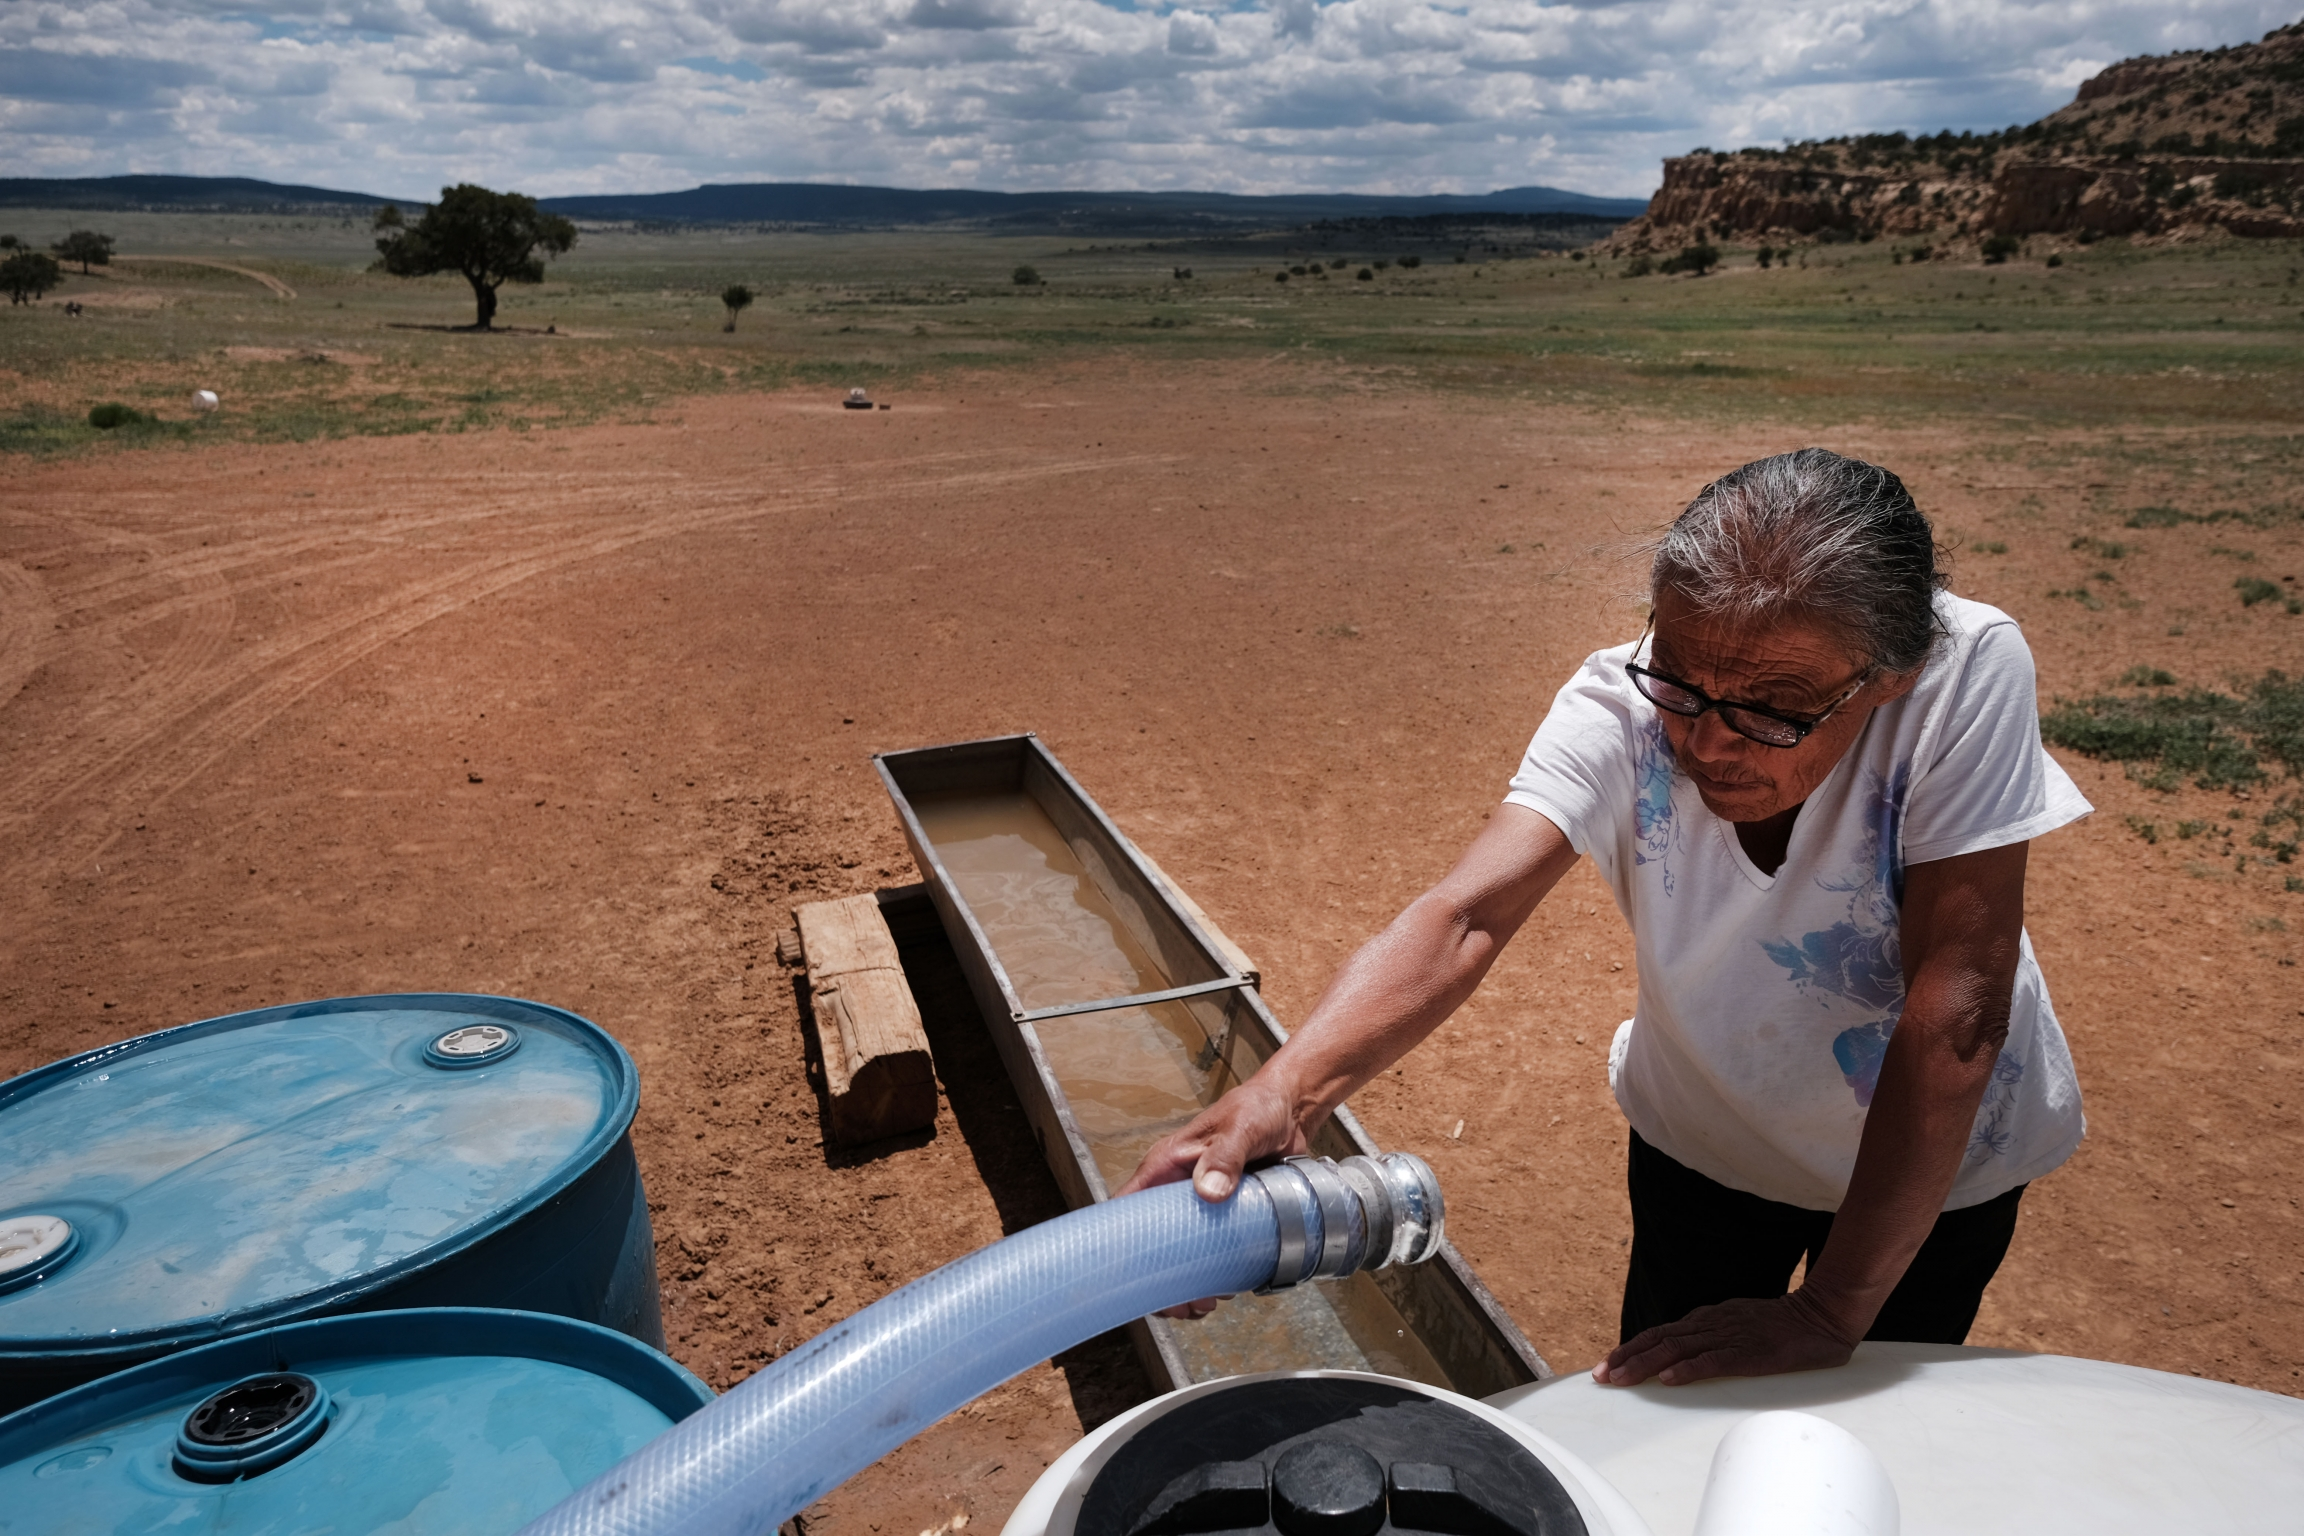 Woman holding hose from truck to fill water trough